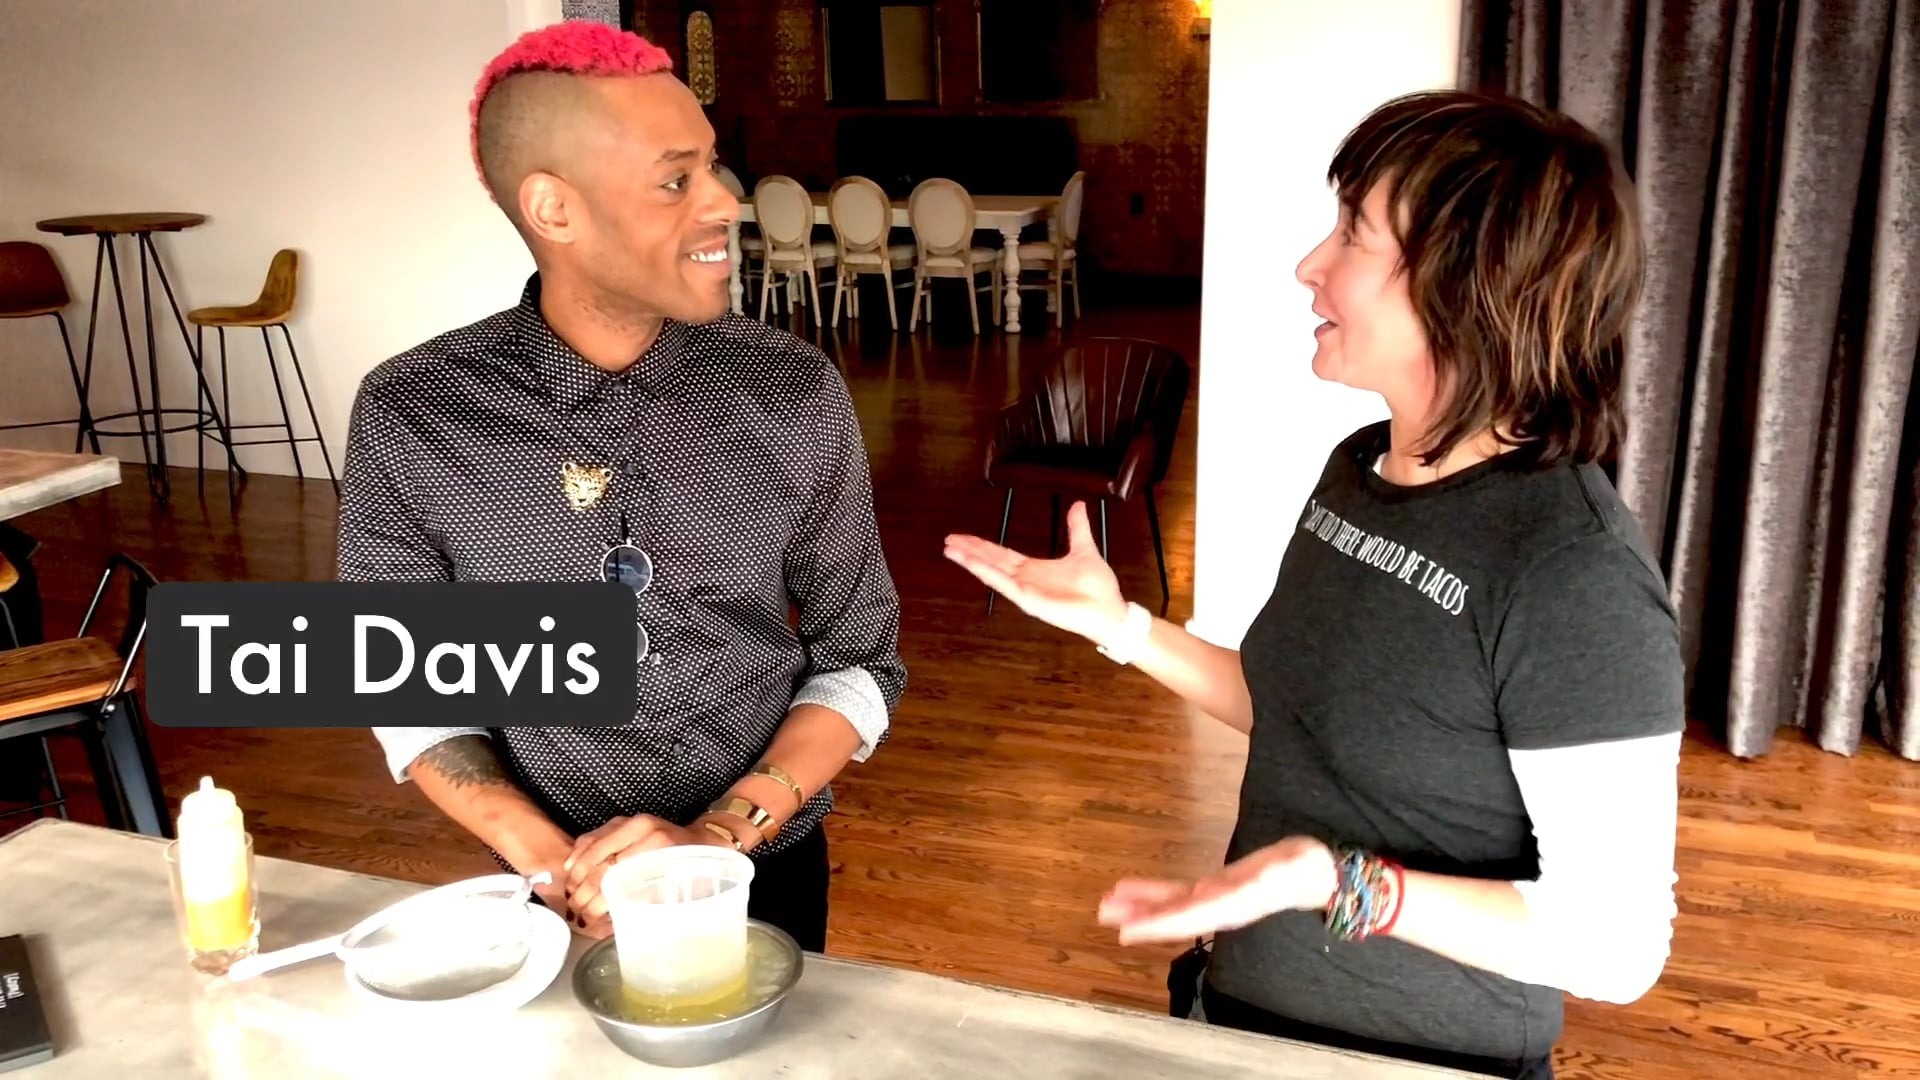 Chef Tai Davis starts the new year off with a bang!